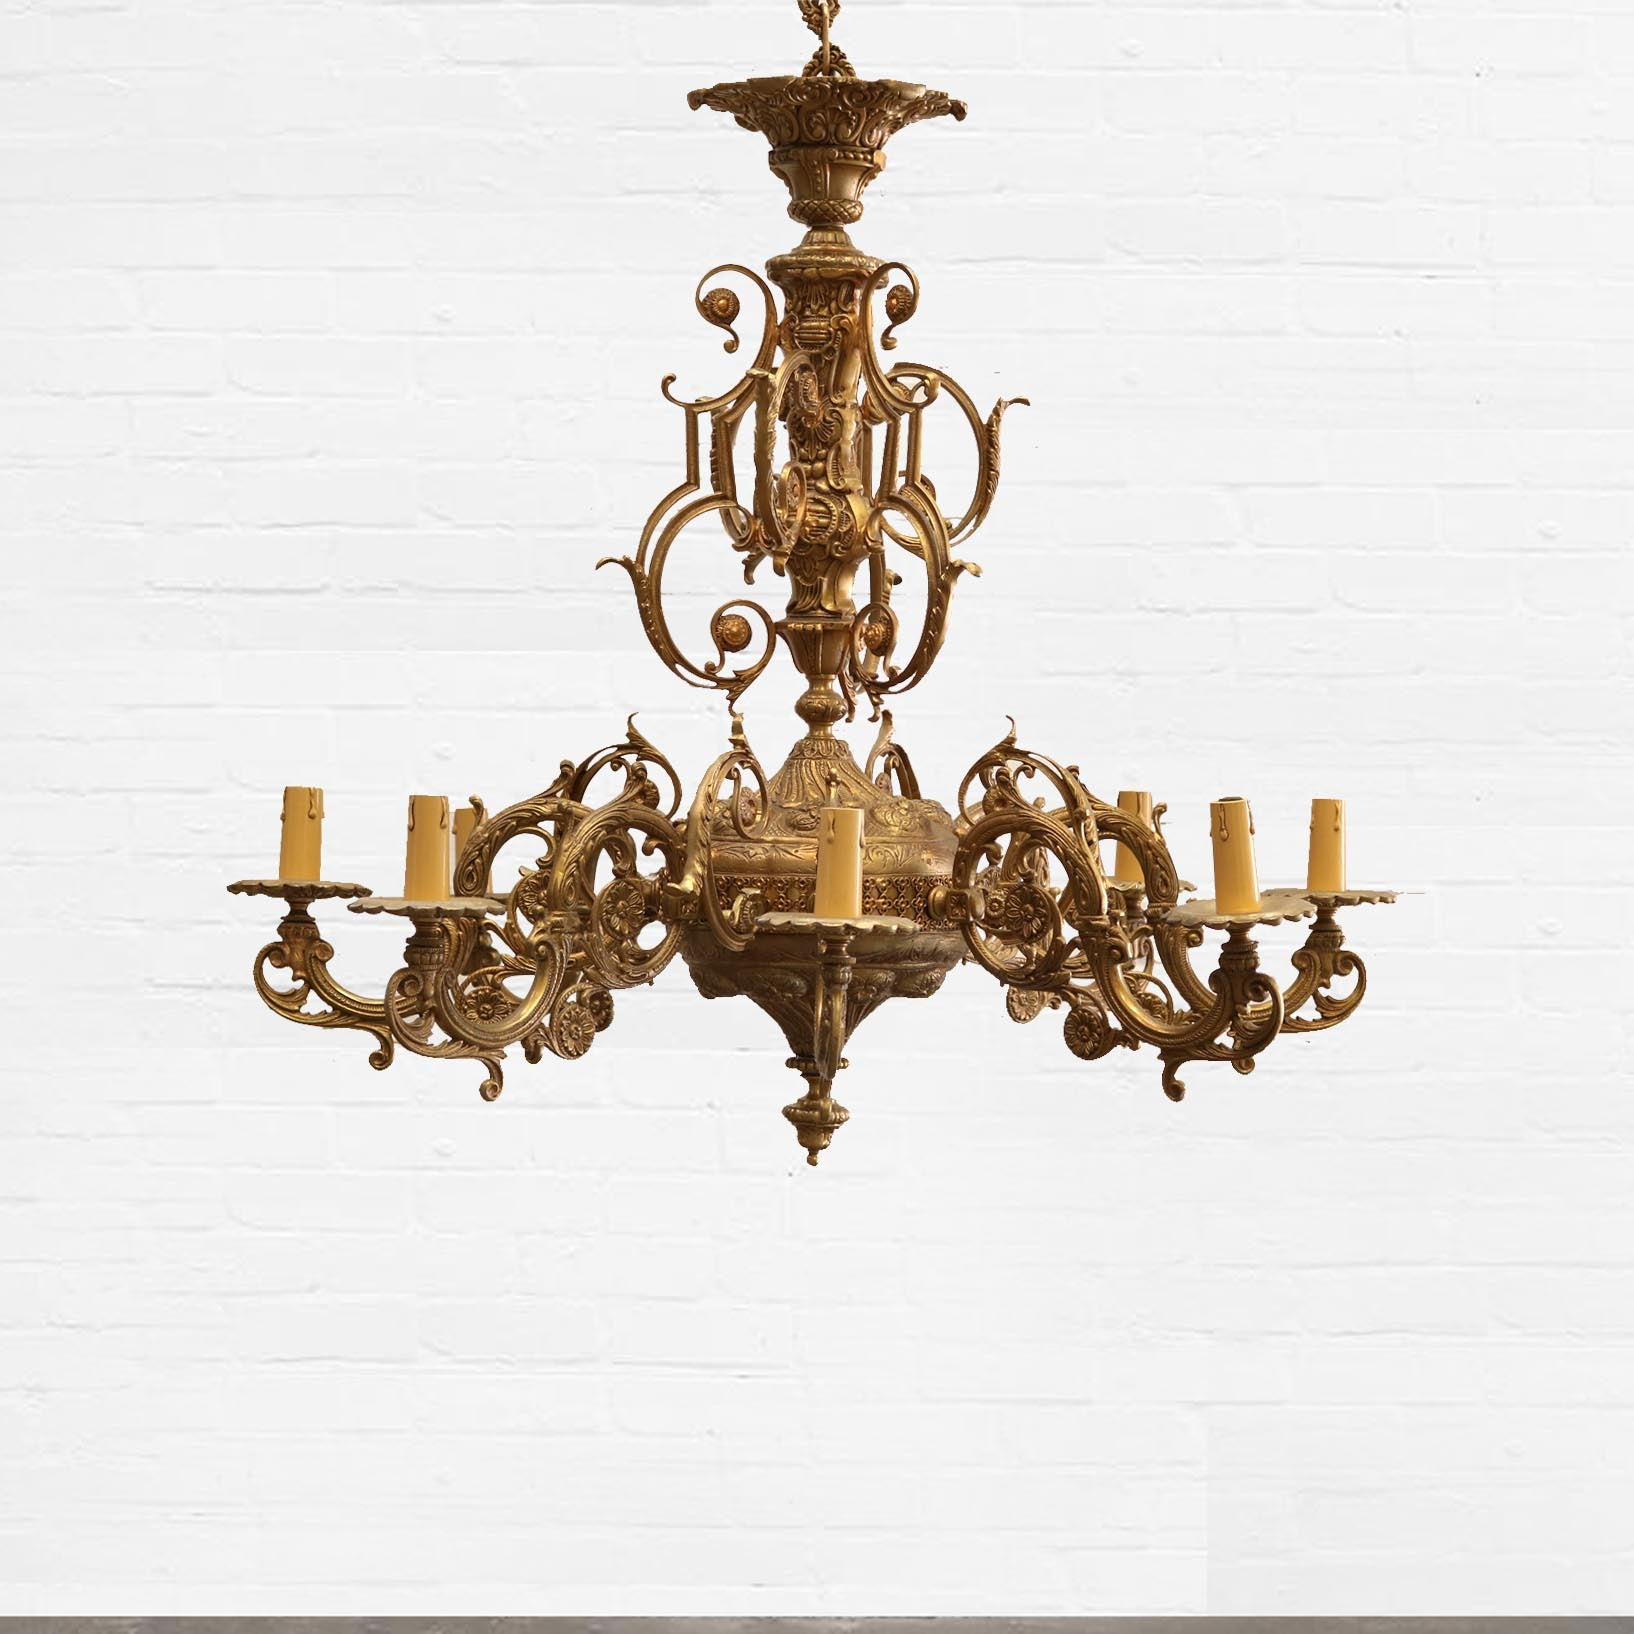 Antique Ornate Brass Chandelier - The Architectural Forum